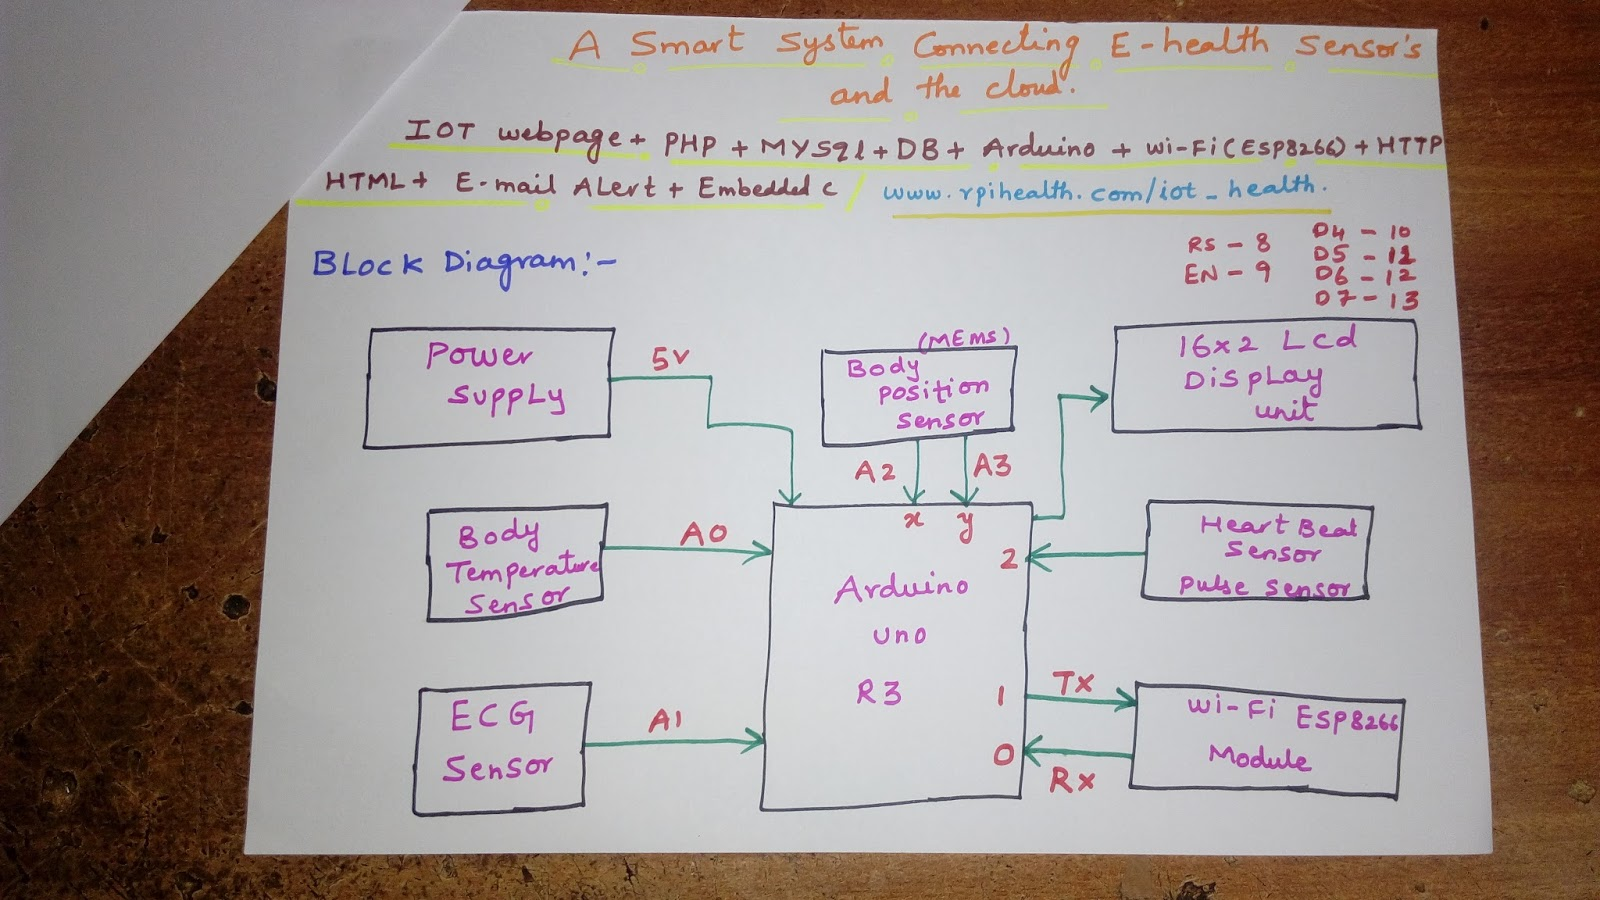 Svsembedded projects 91949153569091 7842358459 a smart system newhealth care arduino project with gps on tft lcd ccuart Images